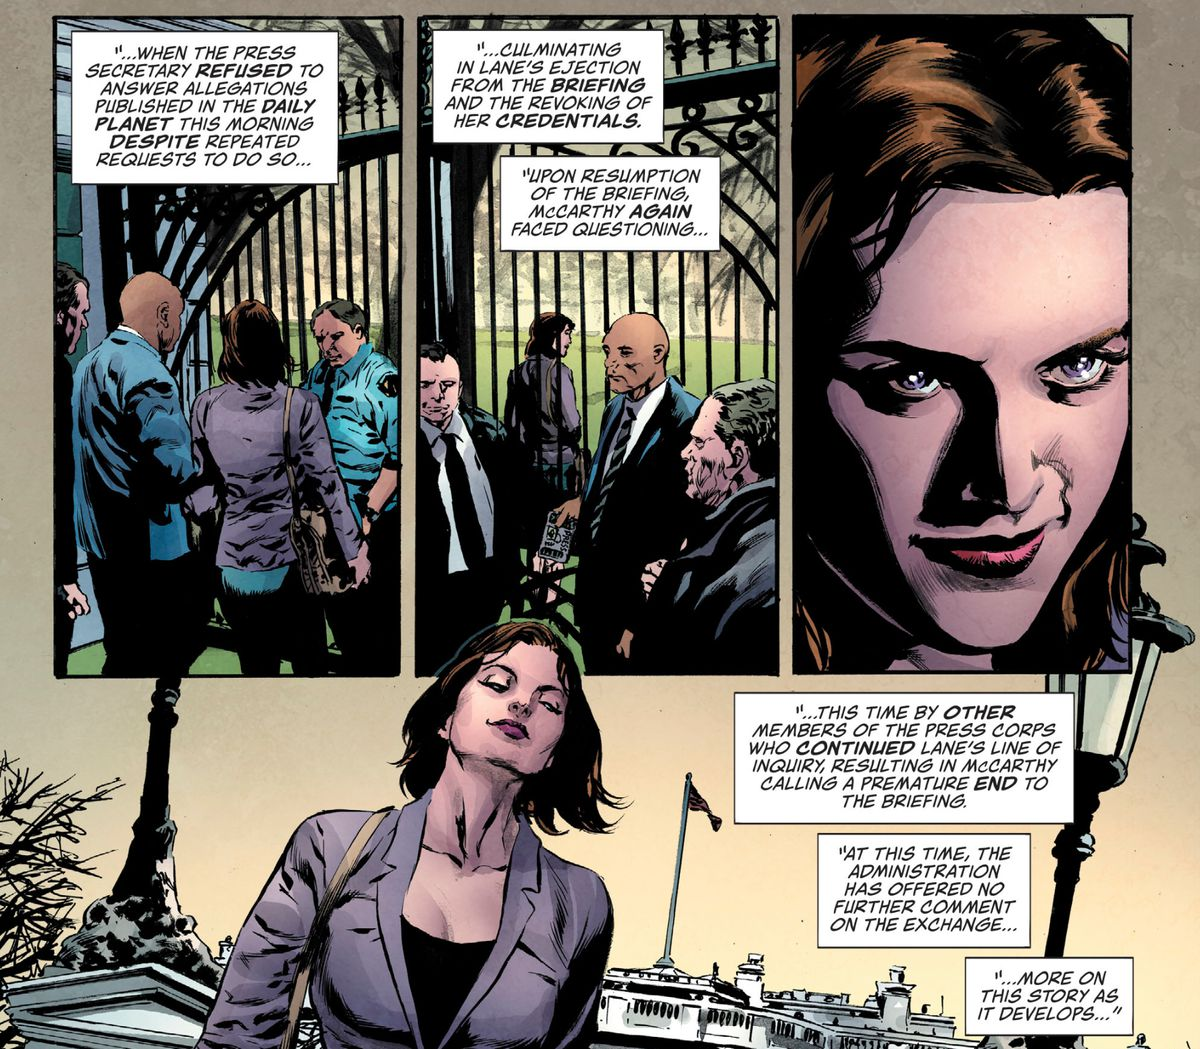 Lois Lane walks away from the White House after having her press credentials revoked for asking too many inconvenient questions in Lois Lane #1, DC Comics (2019).